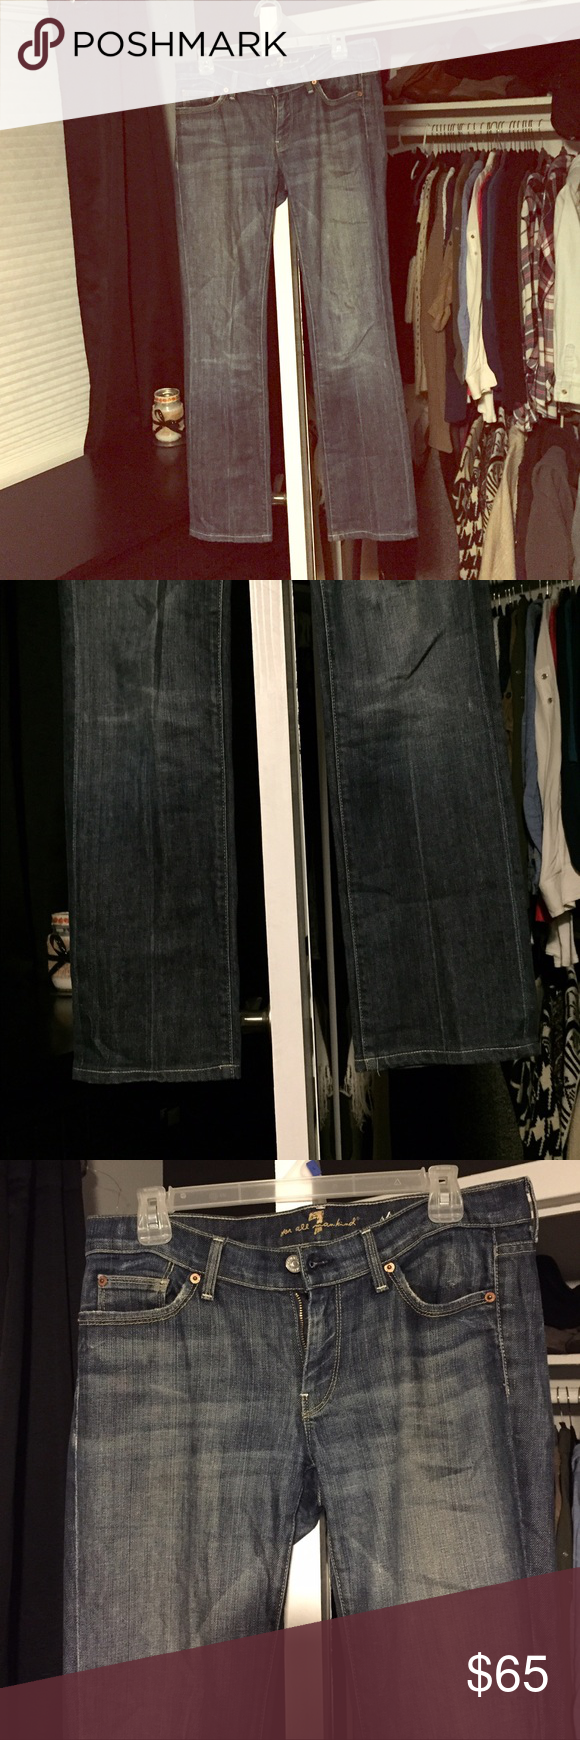 7 For All Mankind Jeans 7 for all Mankind Jeans | straight leg | dark wash | size 30 | will accept reasonable offers! | will also sell cheaper on Merc@ri | only worn twice | amazing condition | they need a new home! 7 For All Mankind Jeans Straight Leg